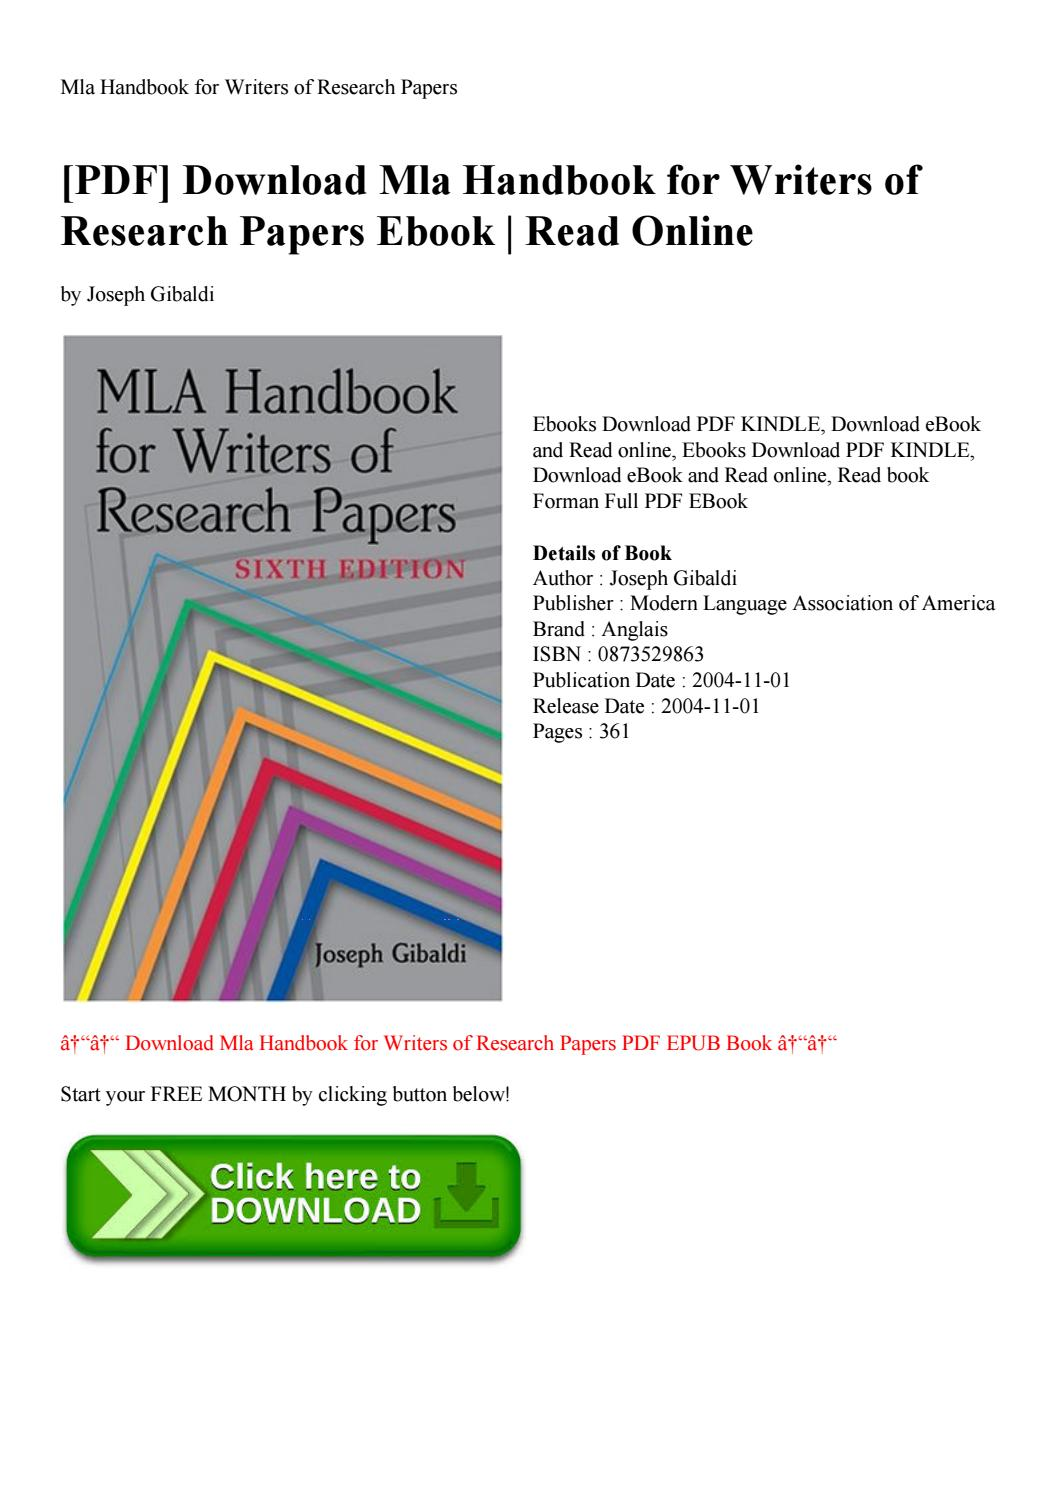 002 Research Paper Mla Handbook For Writers Of Papers Pdf Download Page 1 Top 8th Edition Free Full